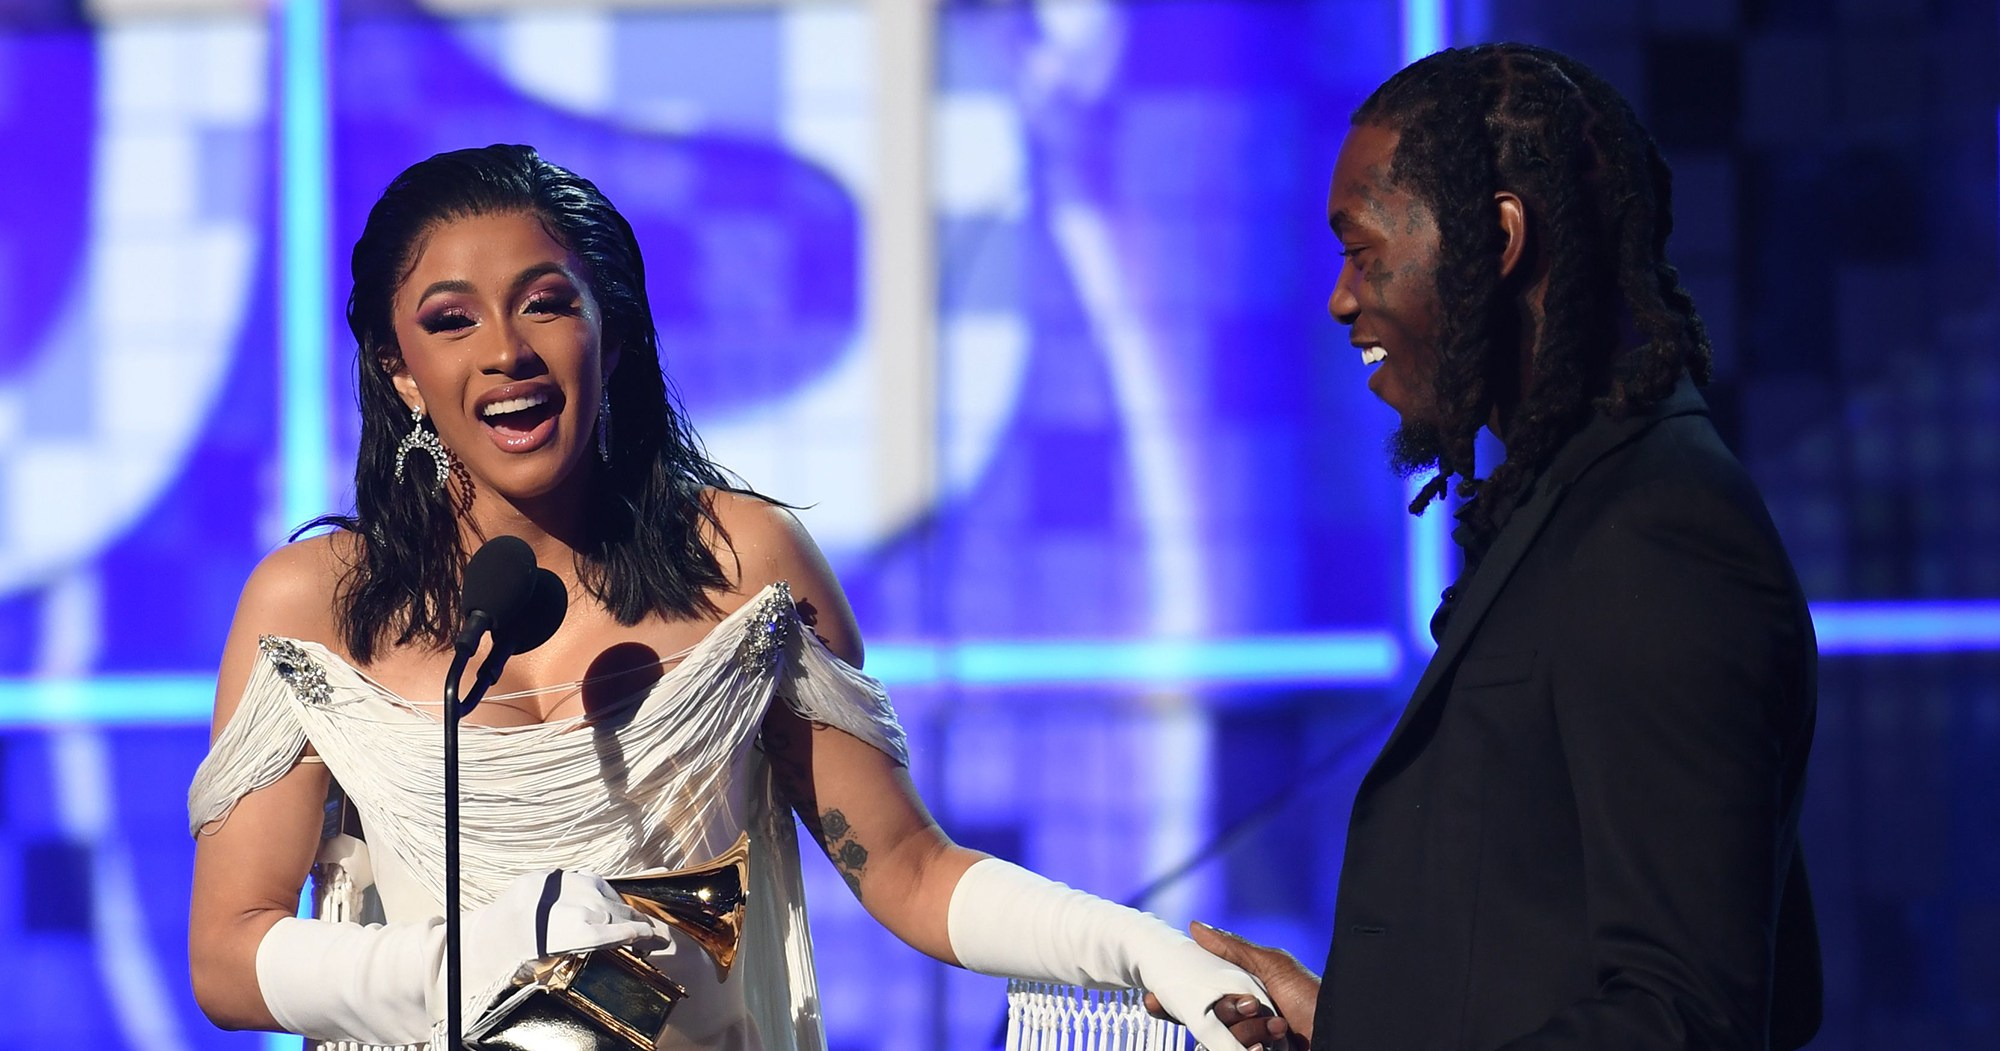 Offset Joins Cardi B on Stage After Best Rap Album Win: 'Husband, Thank You'